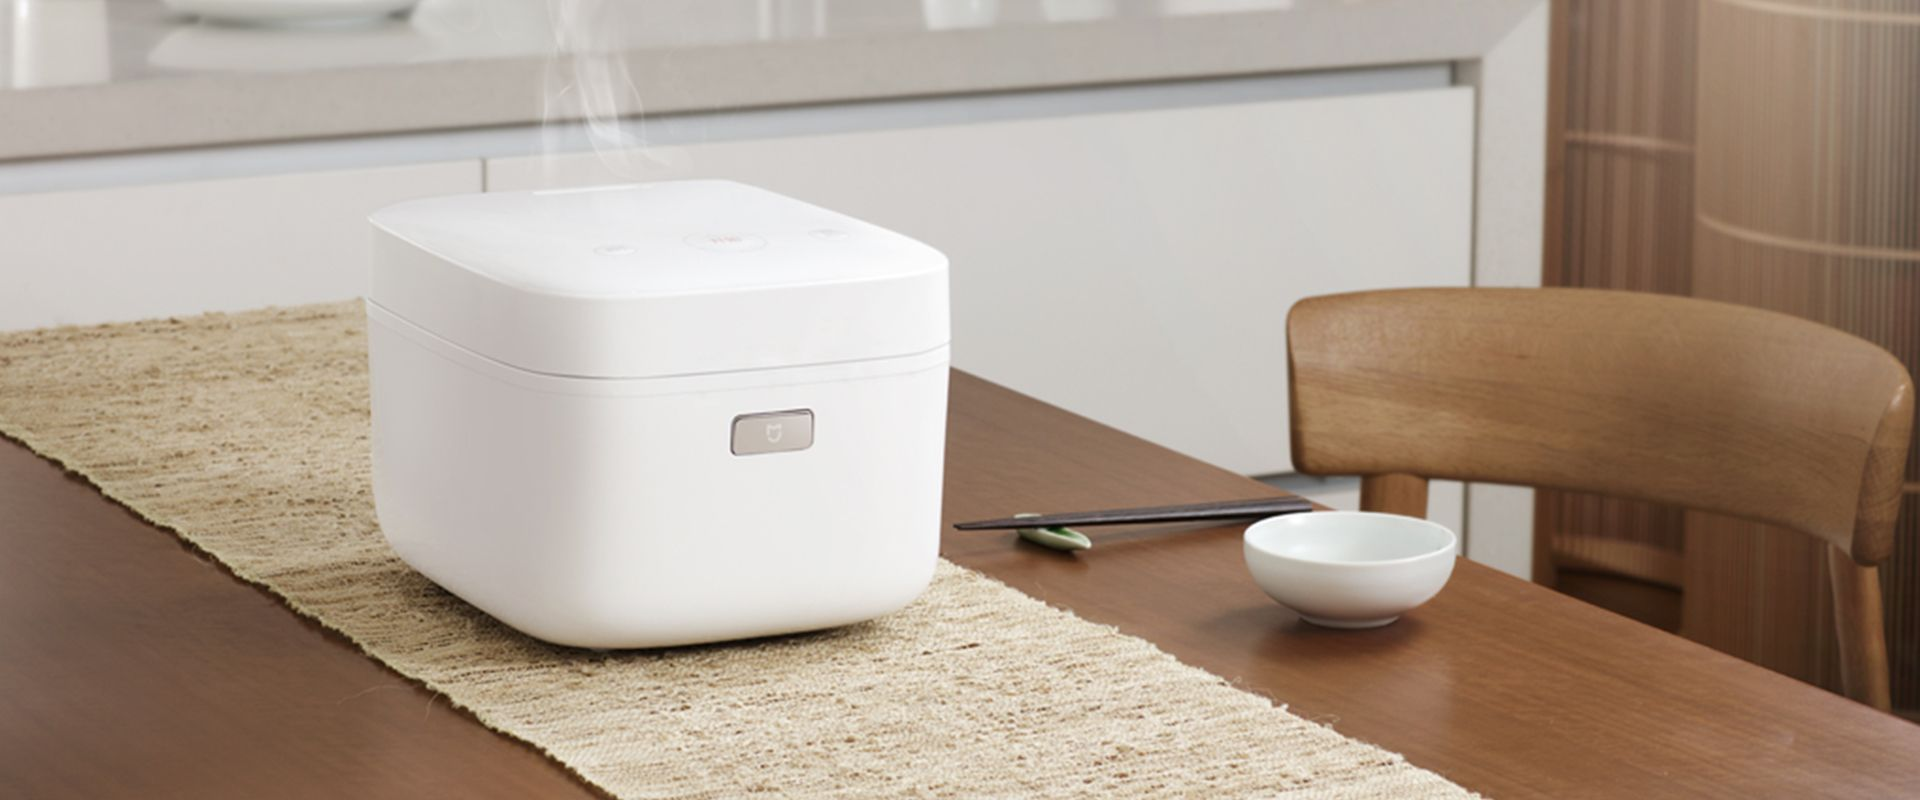 mi-rice-cooker-xiaomi-chile-006